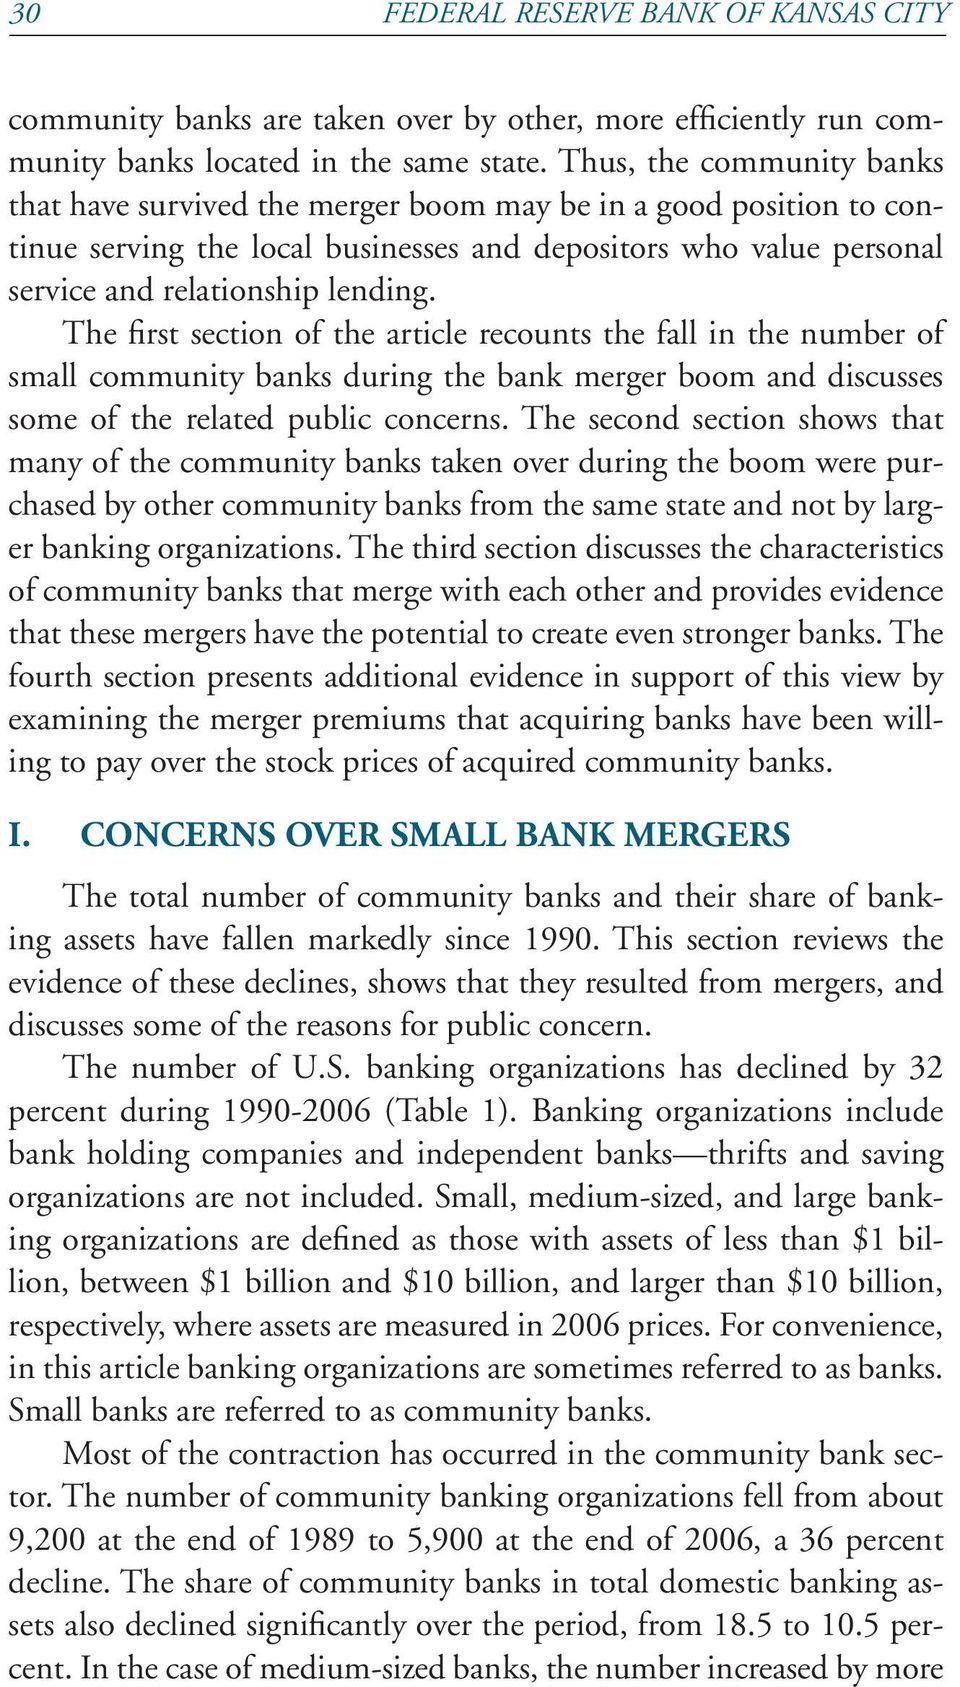 The first section of the article recounts the fall in the number of small community banks during the bank merger boom and discusses some of the related public concerns.